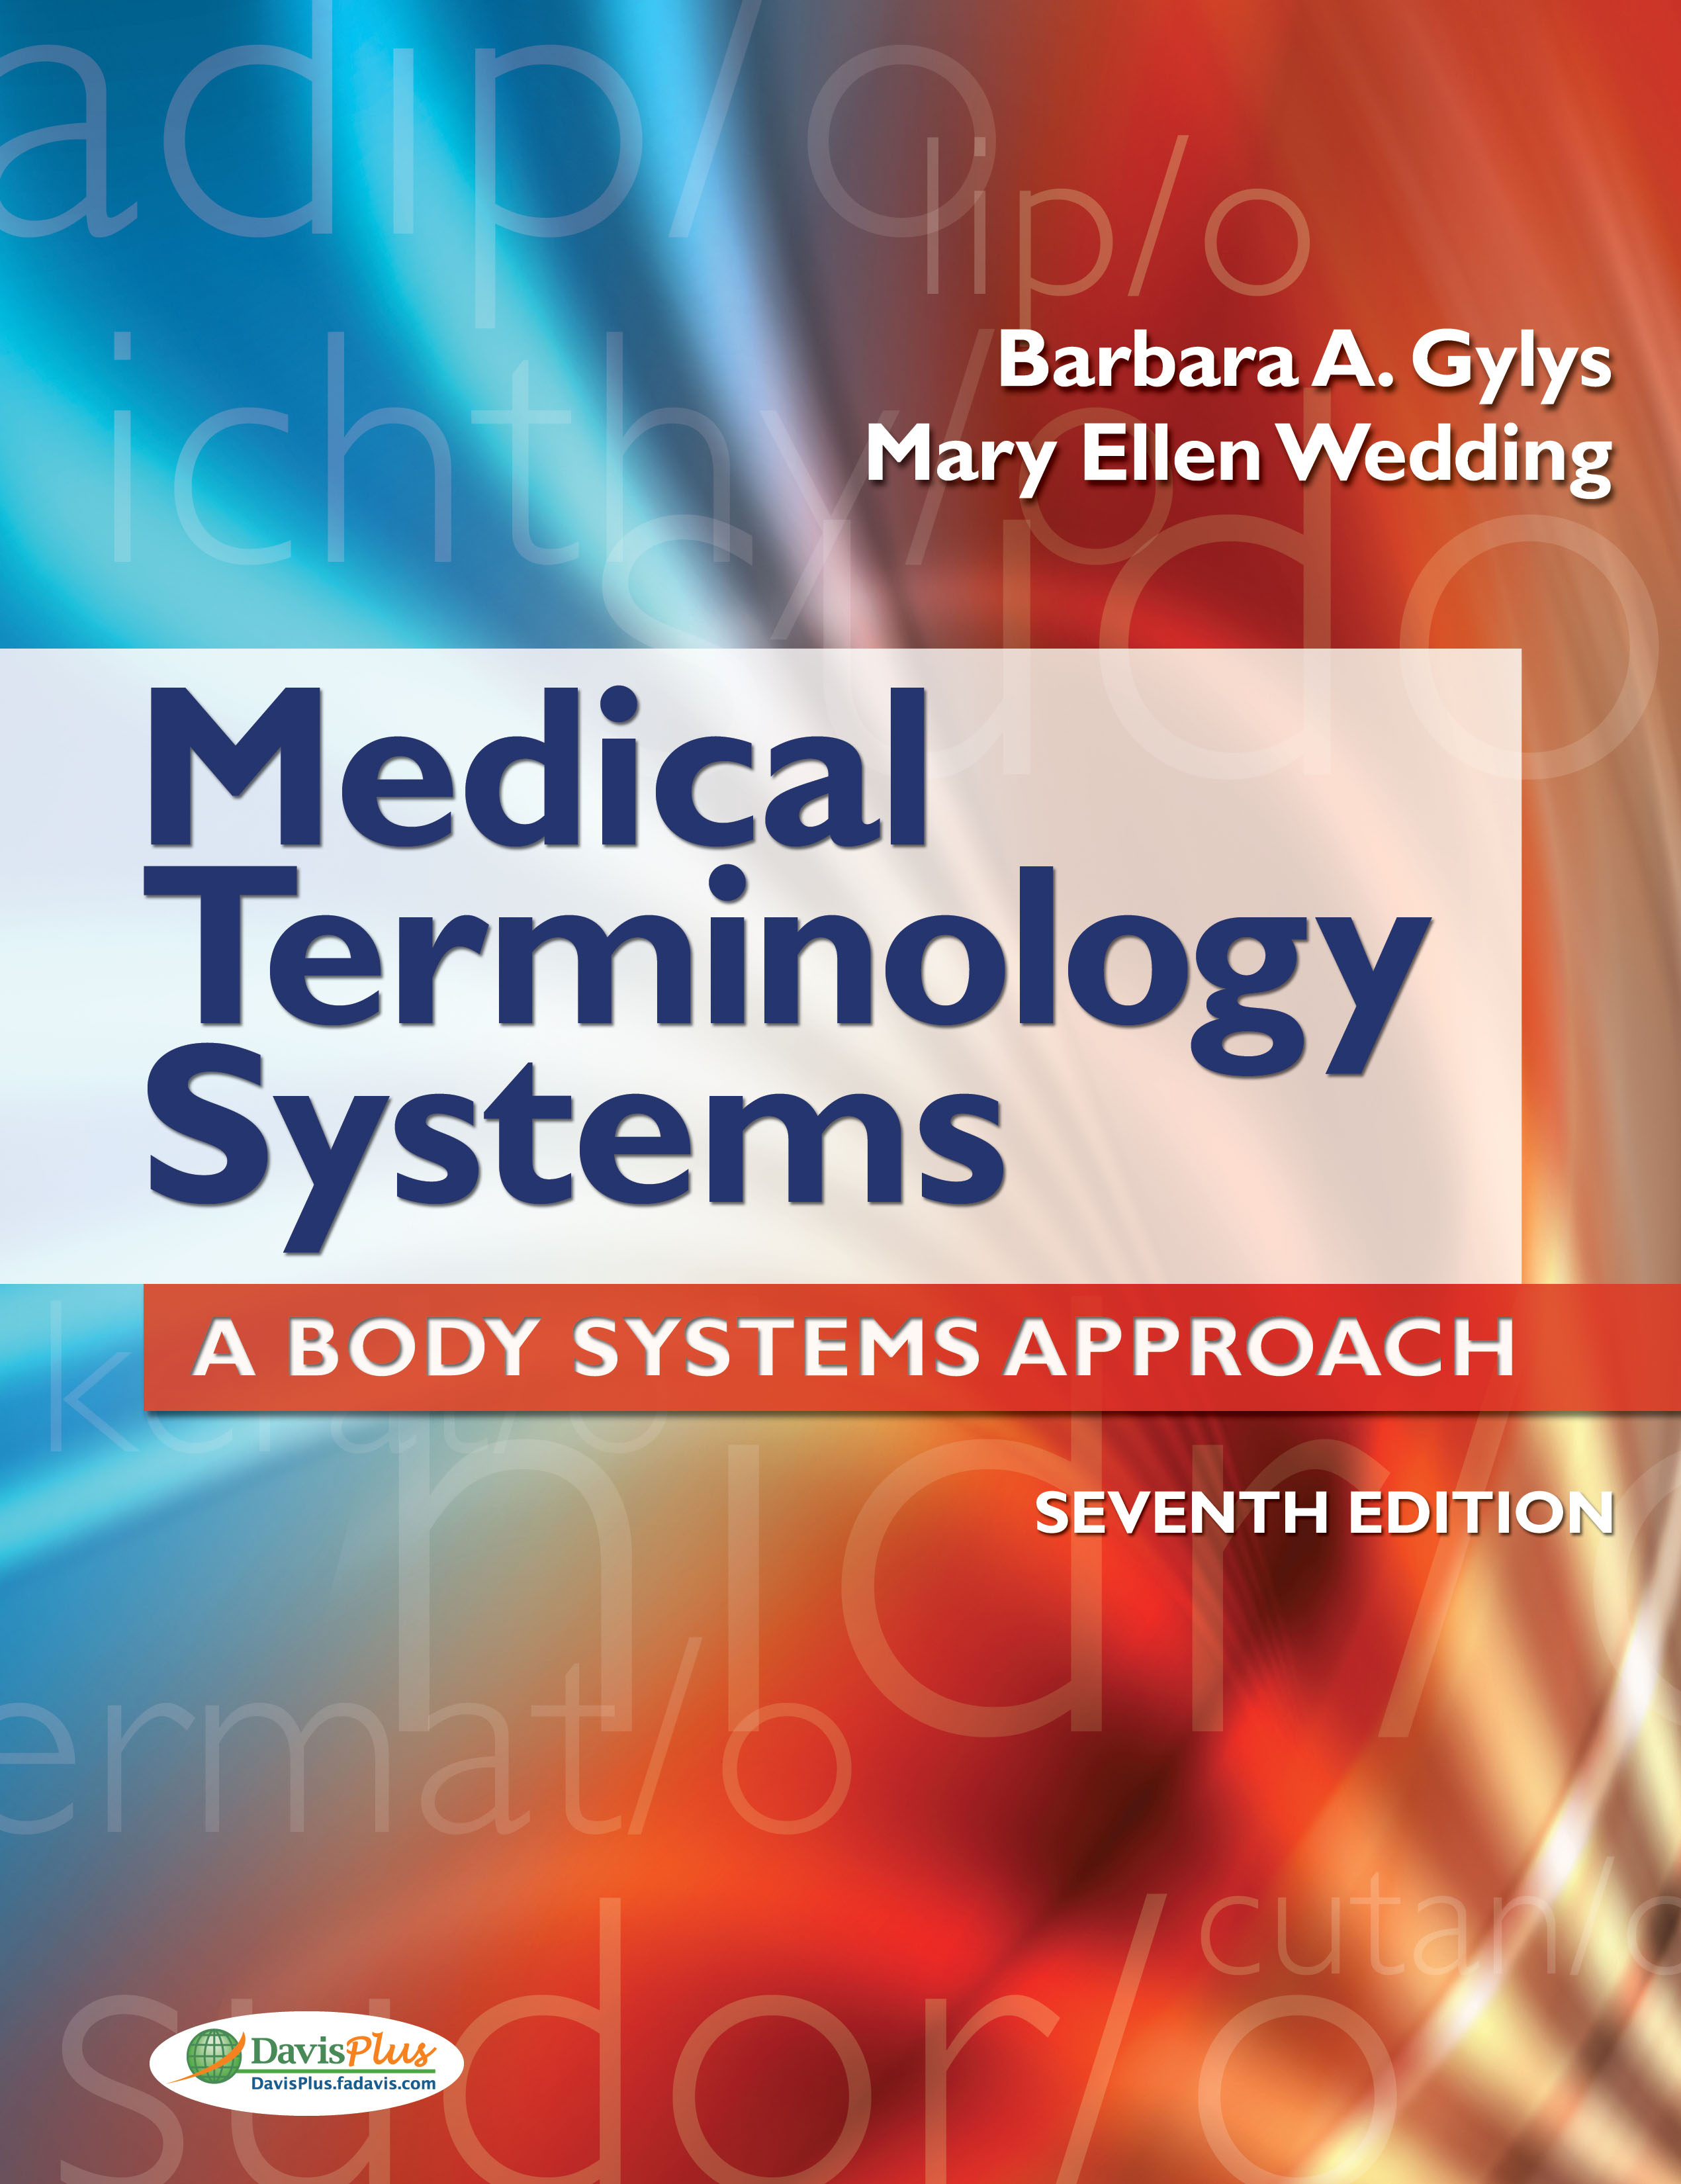 medical terminology abbr The following reference materials appear in stedman's medical dictionary abbreviations and symbols (4 references) common abbreviations used in medication orders/common abbreviations not to be used in medication orderspdf (296 kb.